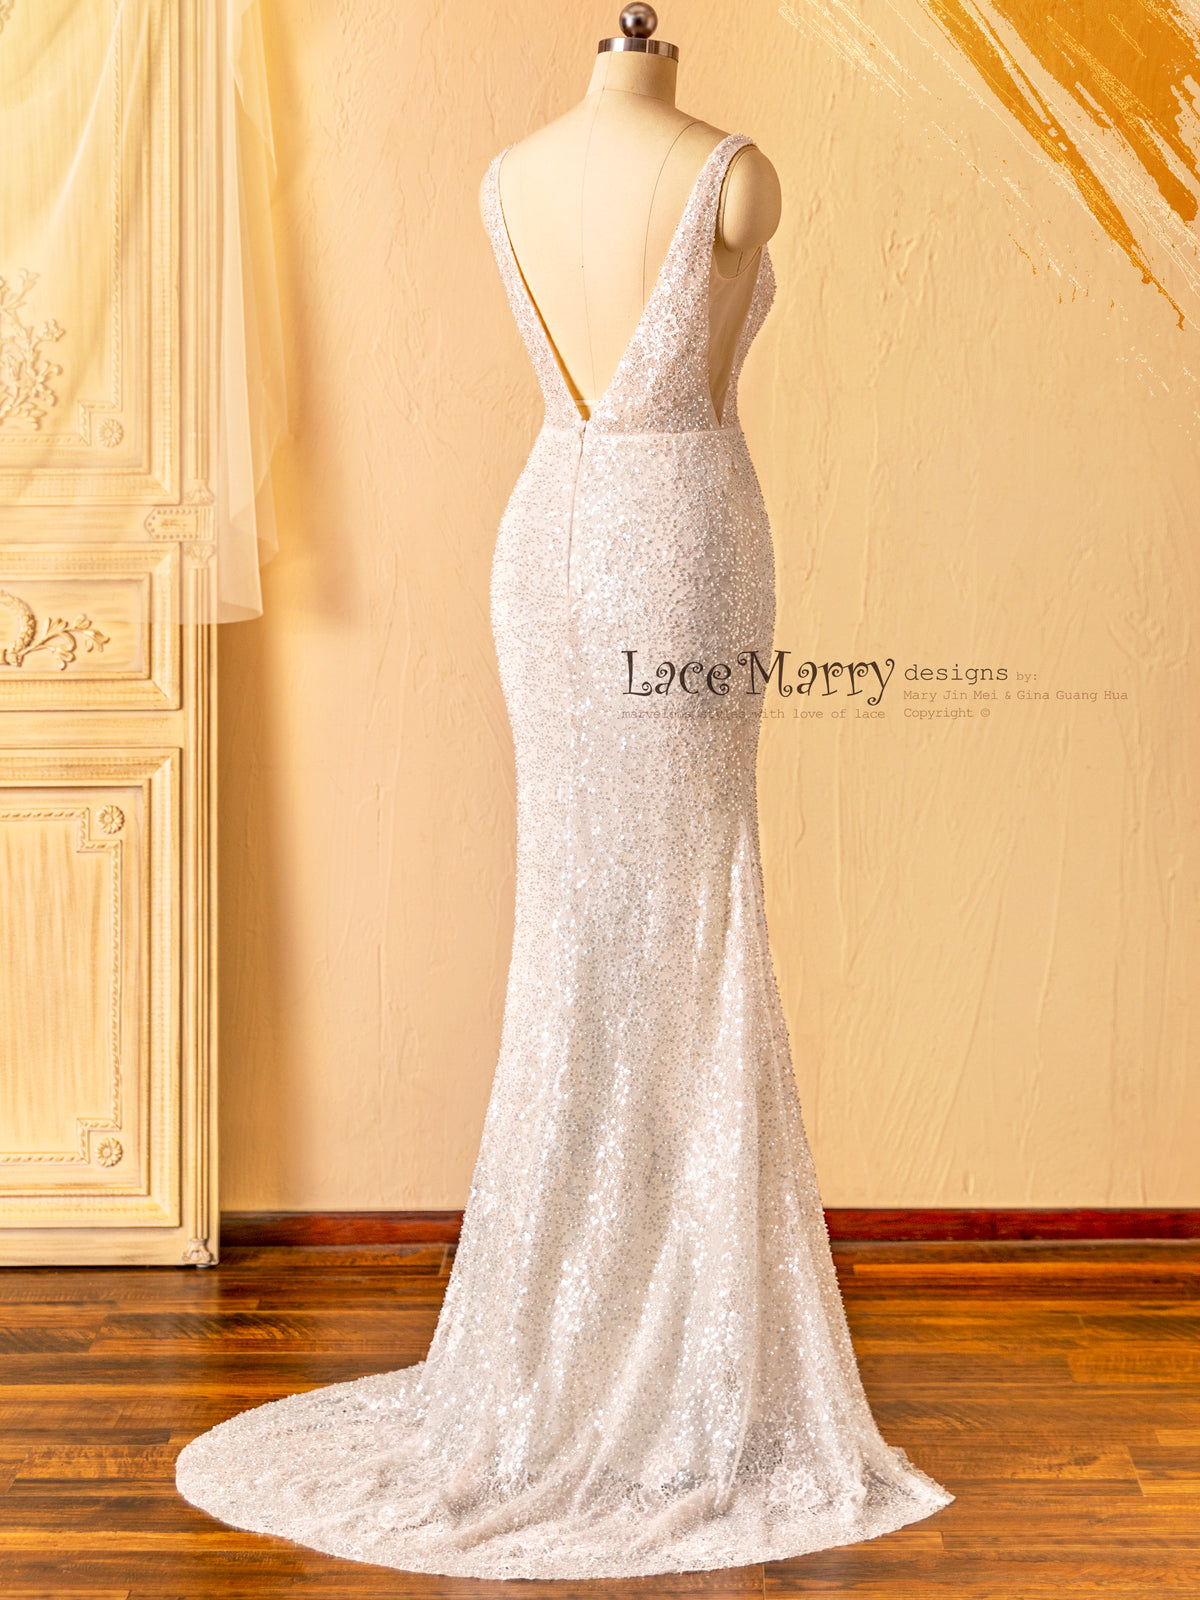 Low V Back Wedding Dress from Sparkling Fabric